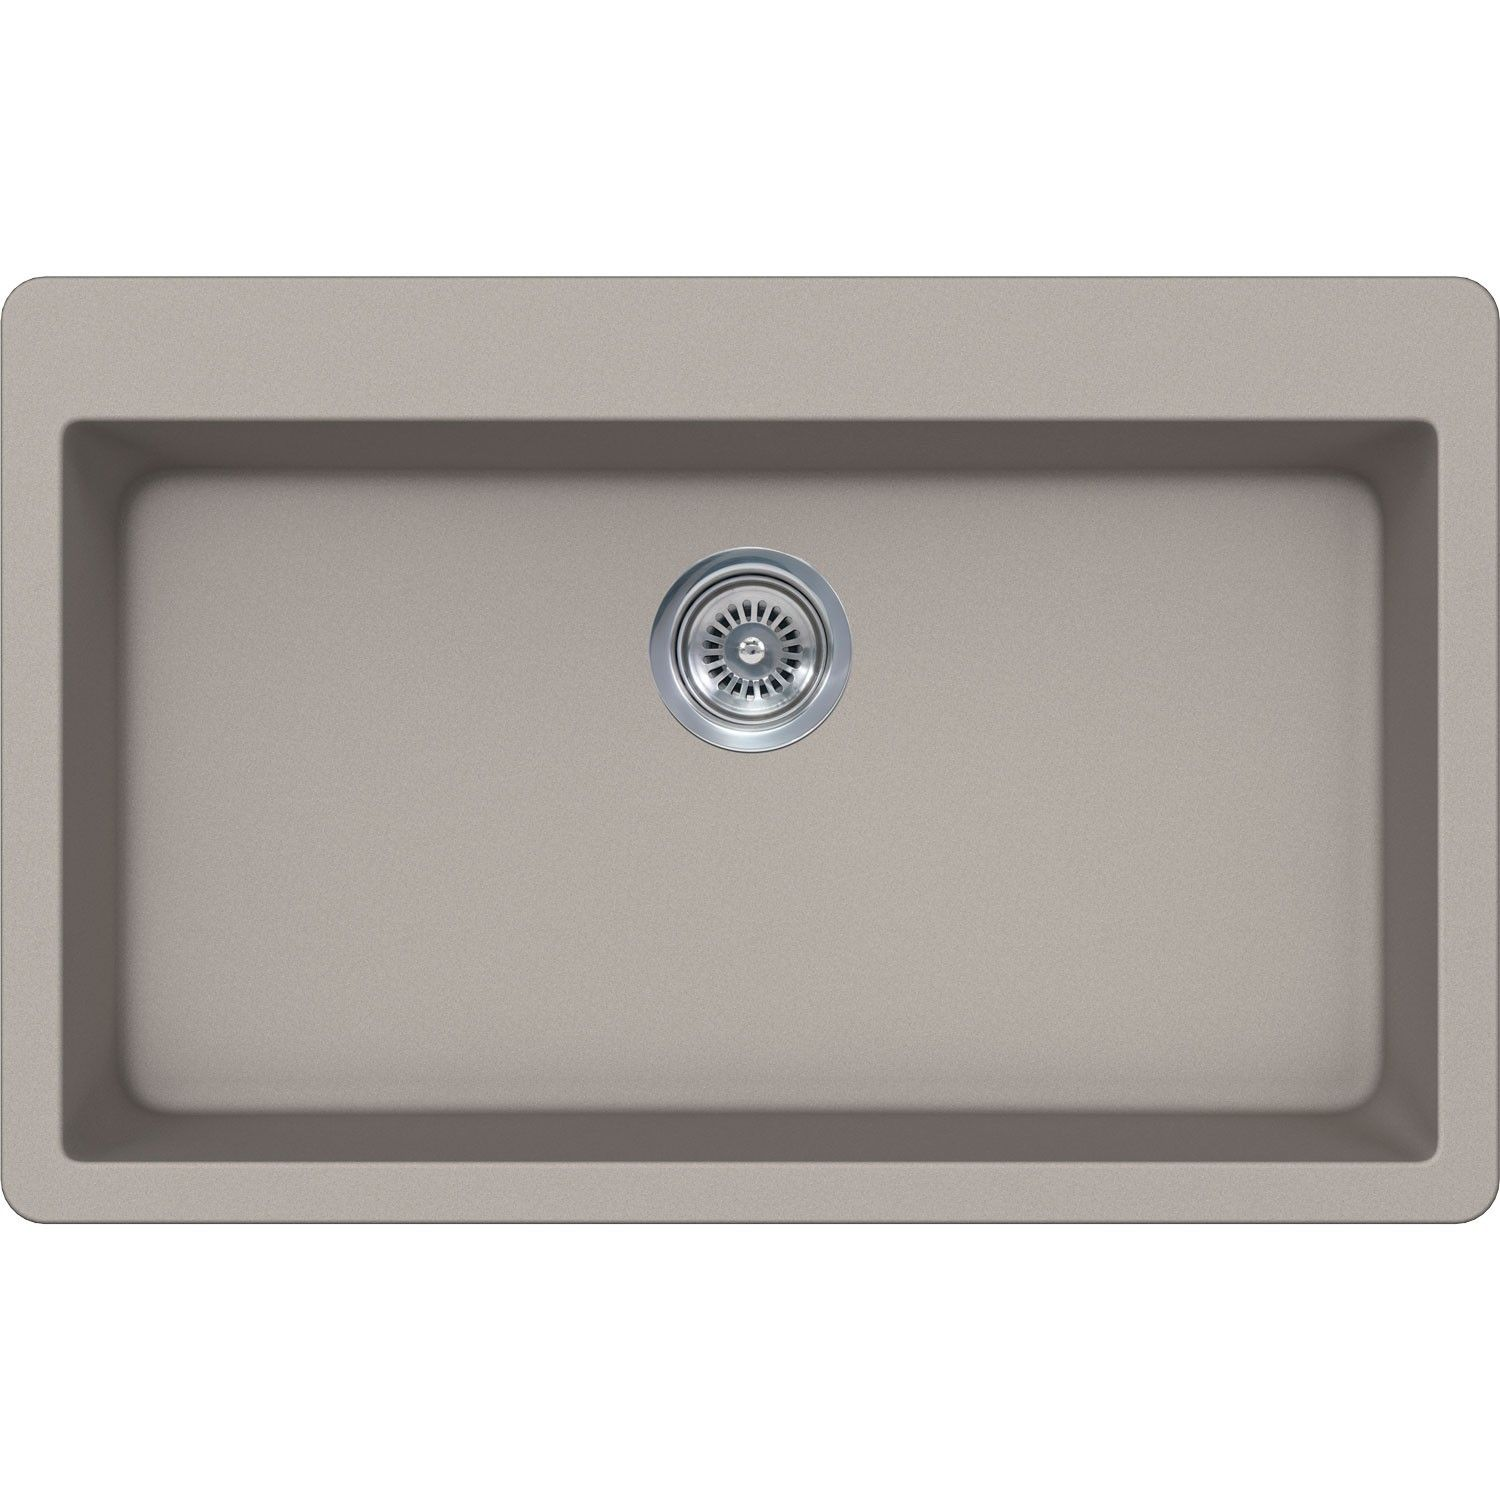 Sinks Kitchen Lexicon Dolce Quartz Composite Stainless